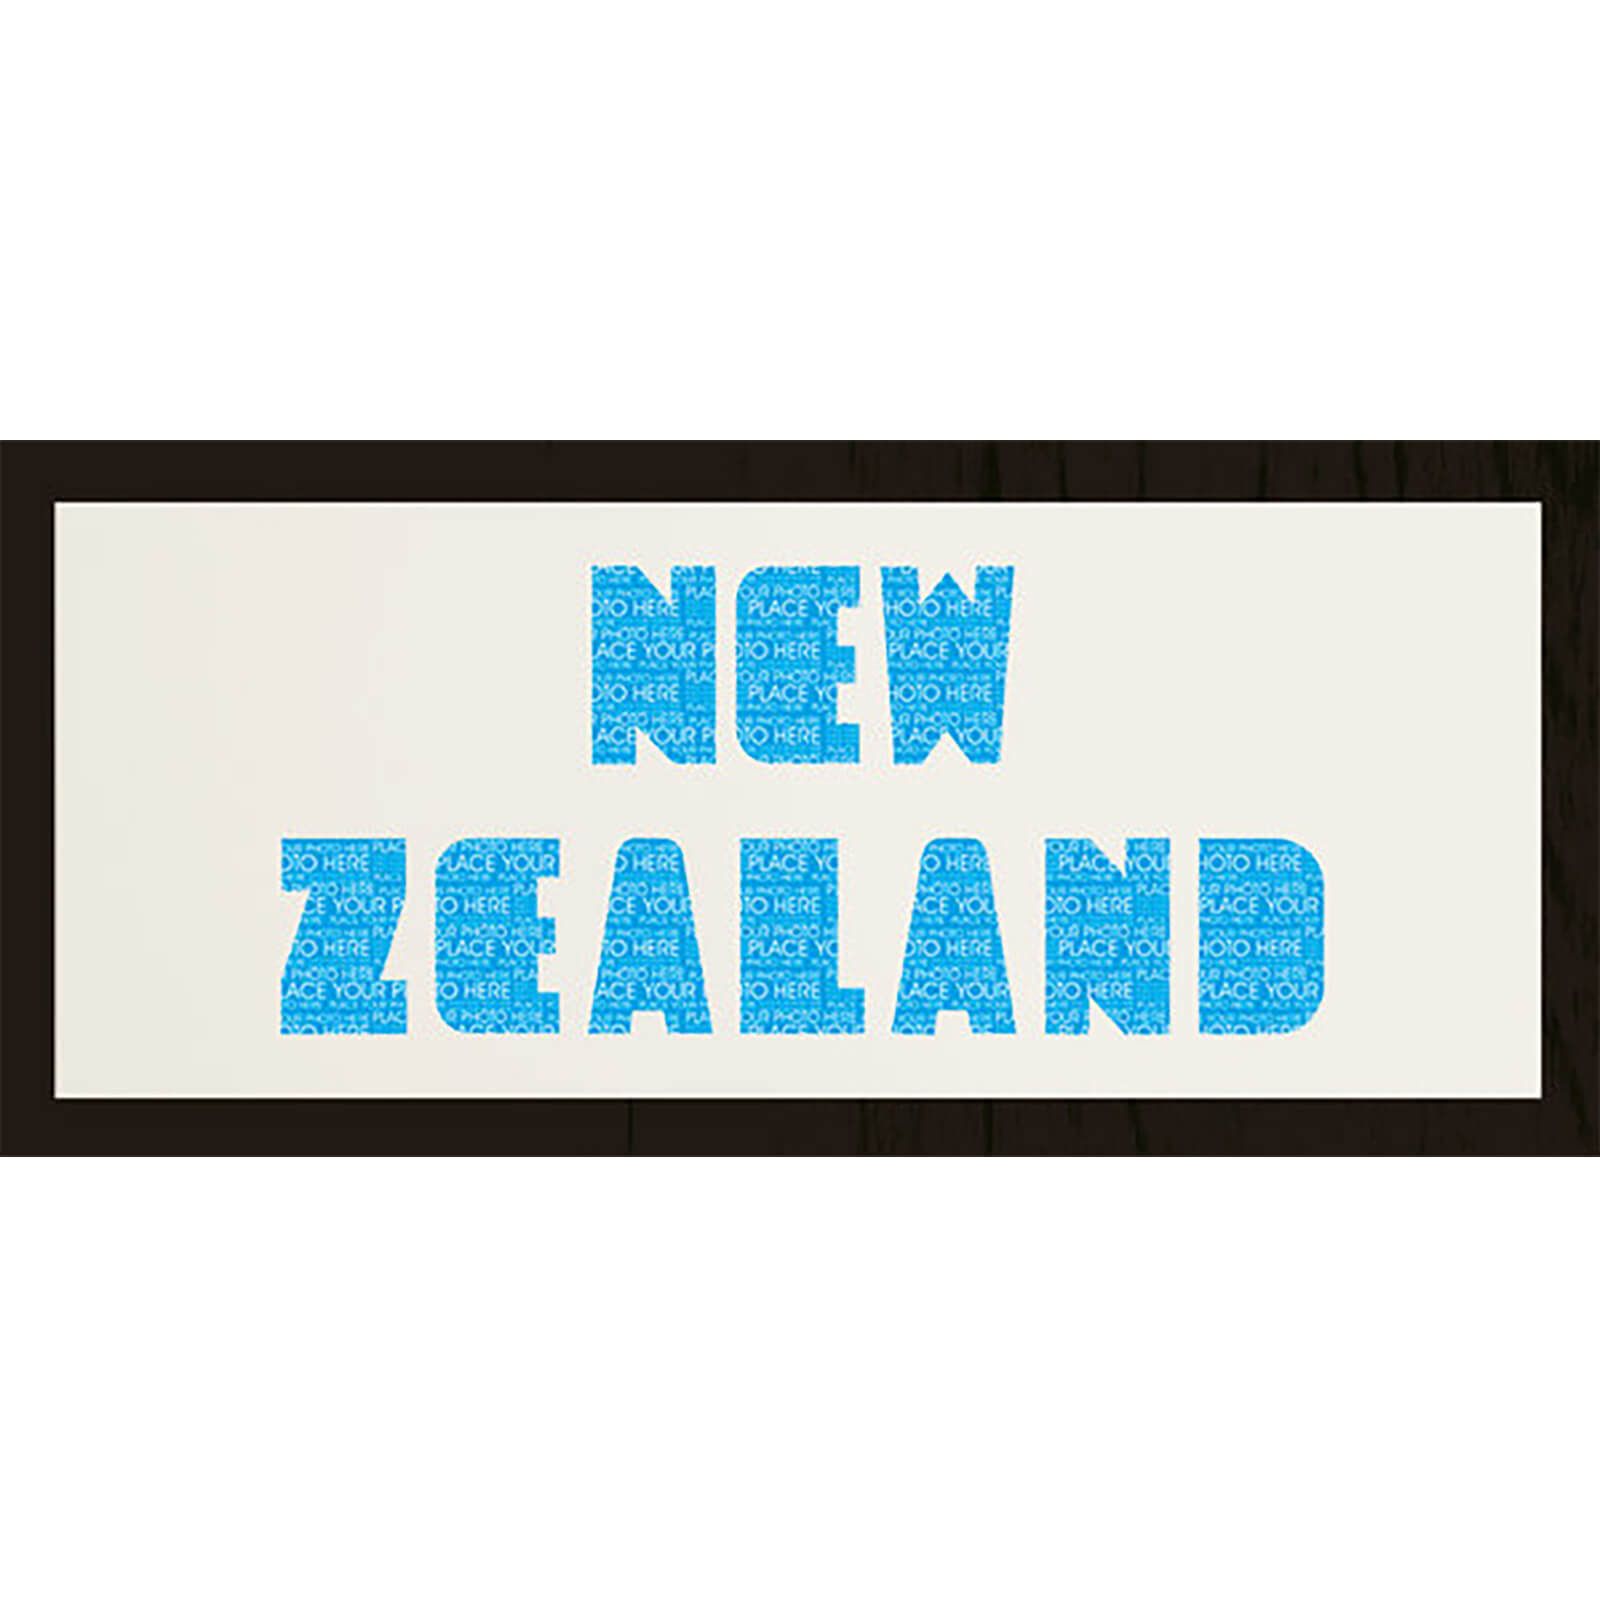 "GB Cream Mount New Zealand Photo Font - Framed Mount - 12"""" x 30"""